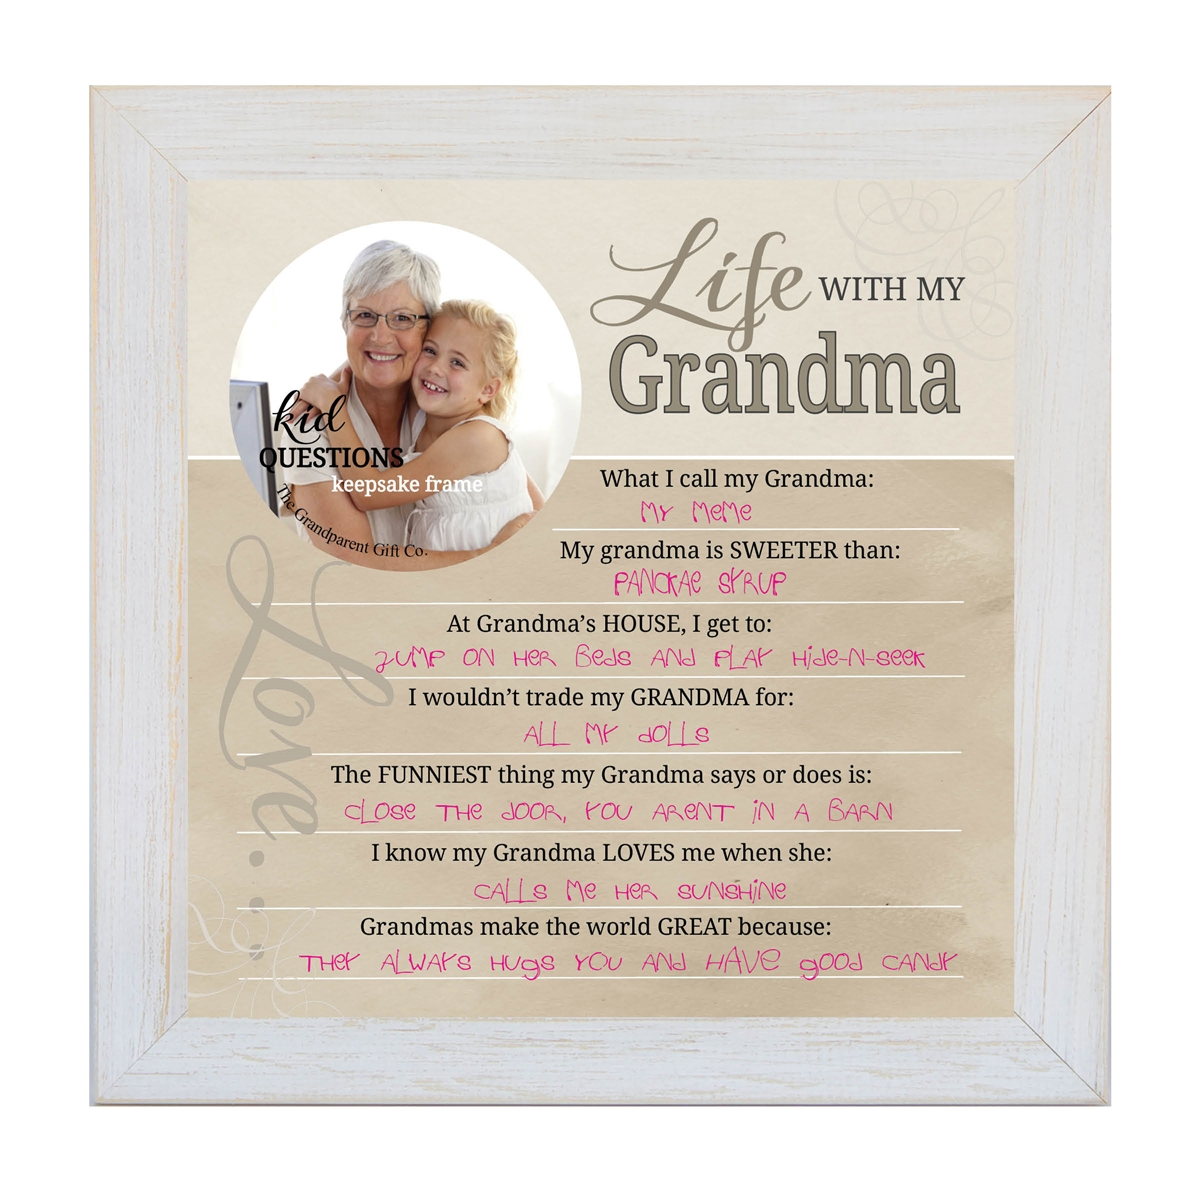 Kid Question Frame for Grandma